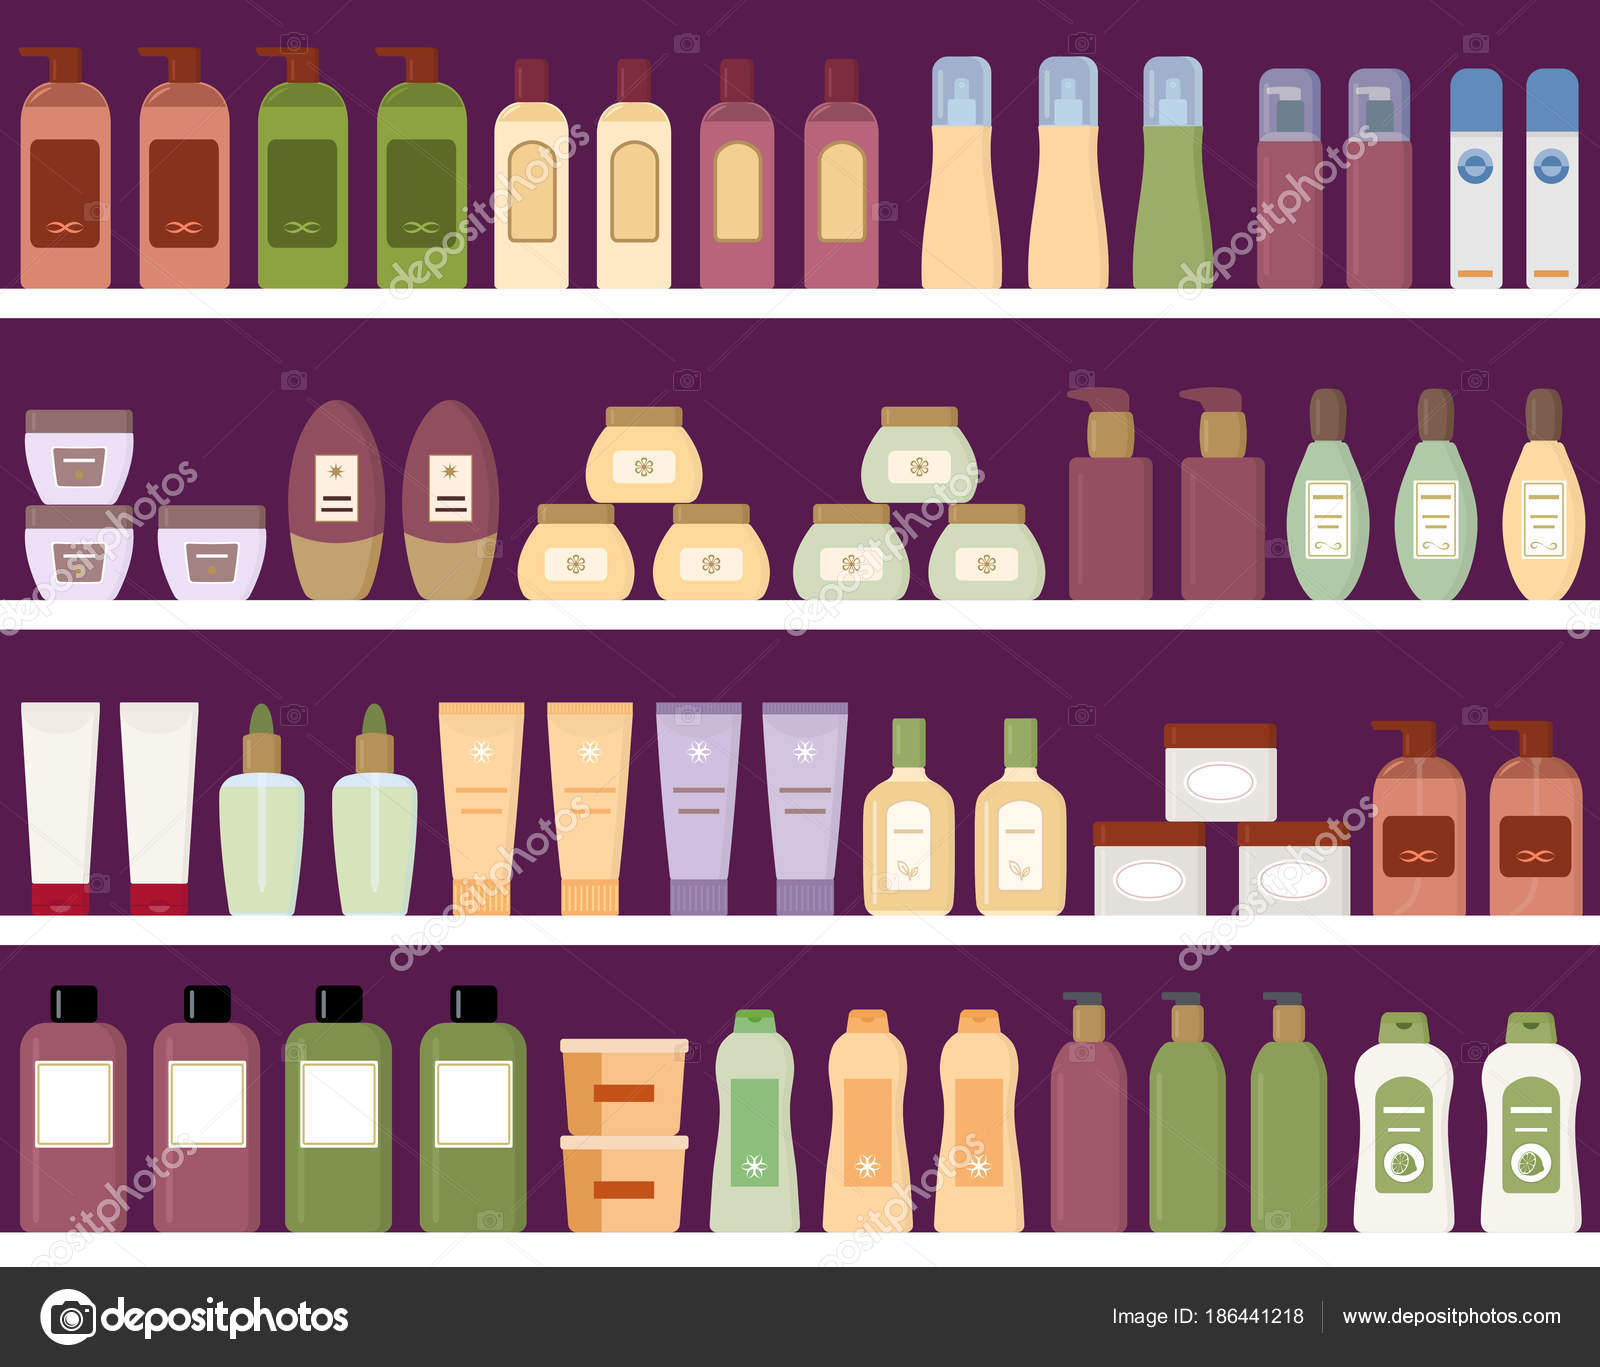 Shelves Colorful Cosmetic Products Plastic Bottles Seamless